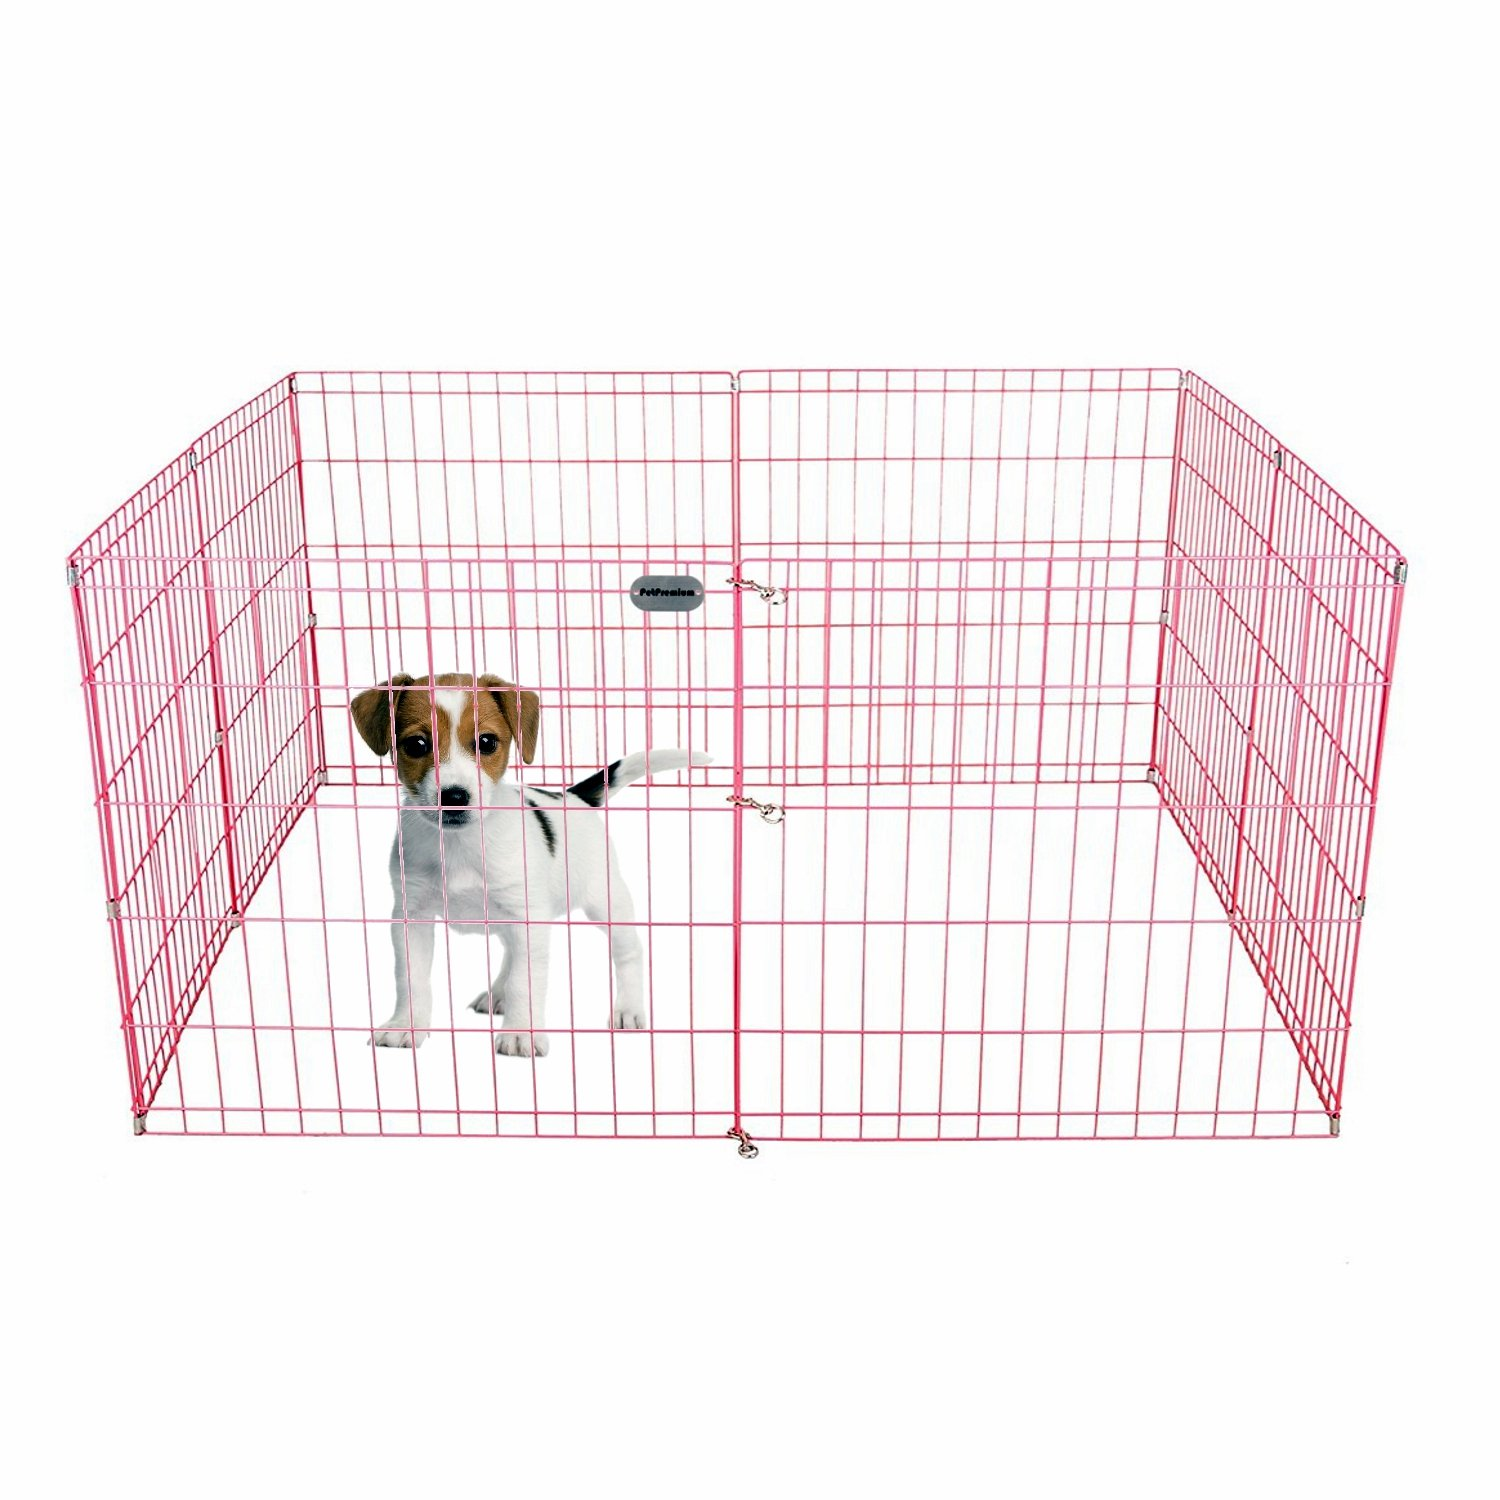 Pet Premium Dog Puppy Playpen Pen | Indoor Outdoor Exercise Play Yard Outside | Pet Small Animal Puppies Portable Foldable Fence Enclosures | 24'' Height, 8 Panel Metal Wire, Pink